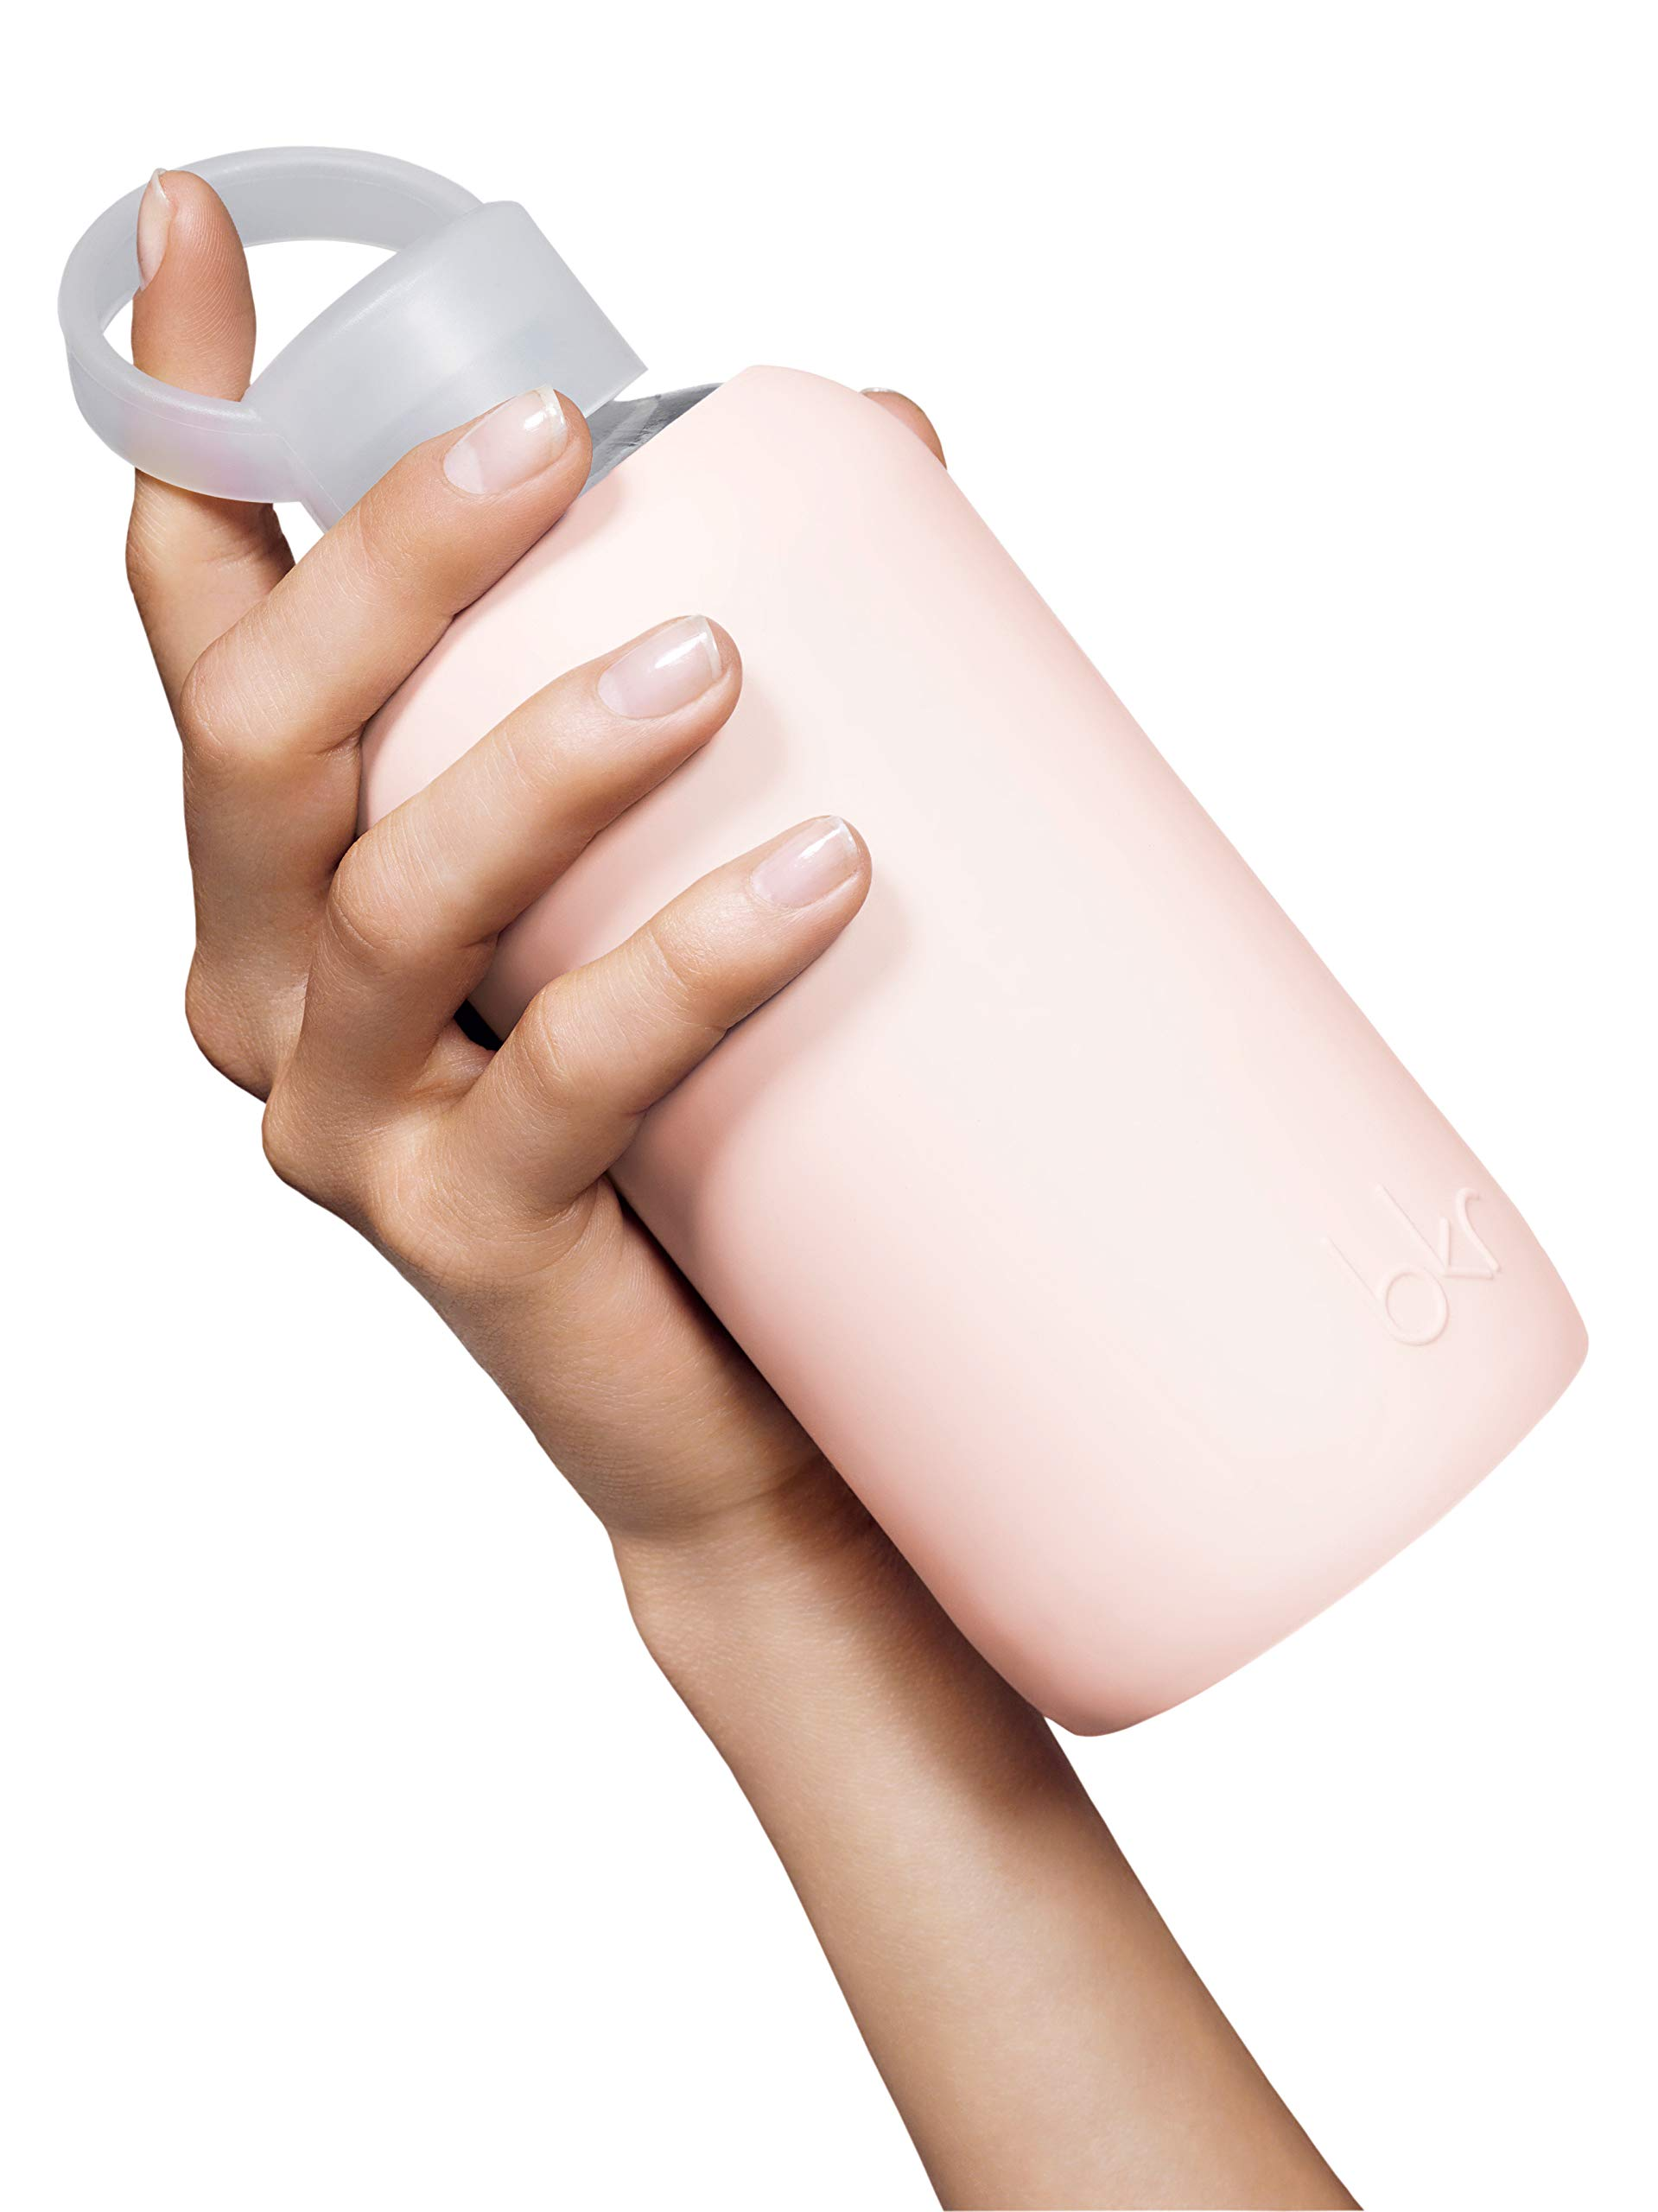 bkr Tutu Glass Water Bottle with Smooth Silicone Sleeve for Travel, Narrow Mouth, BPA-Free & Dishwasher Safe, Opaque Ballet Pale Peachy Pink, 16 oz / 500 mL by bkr (Image #6)